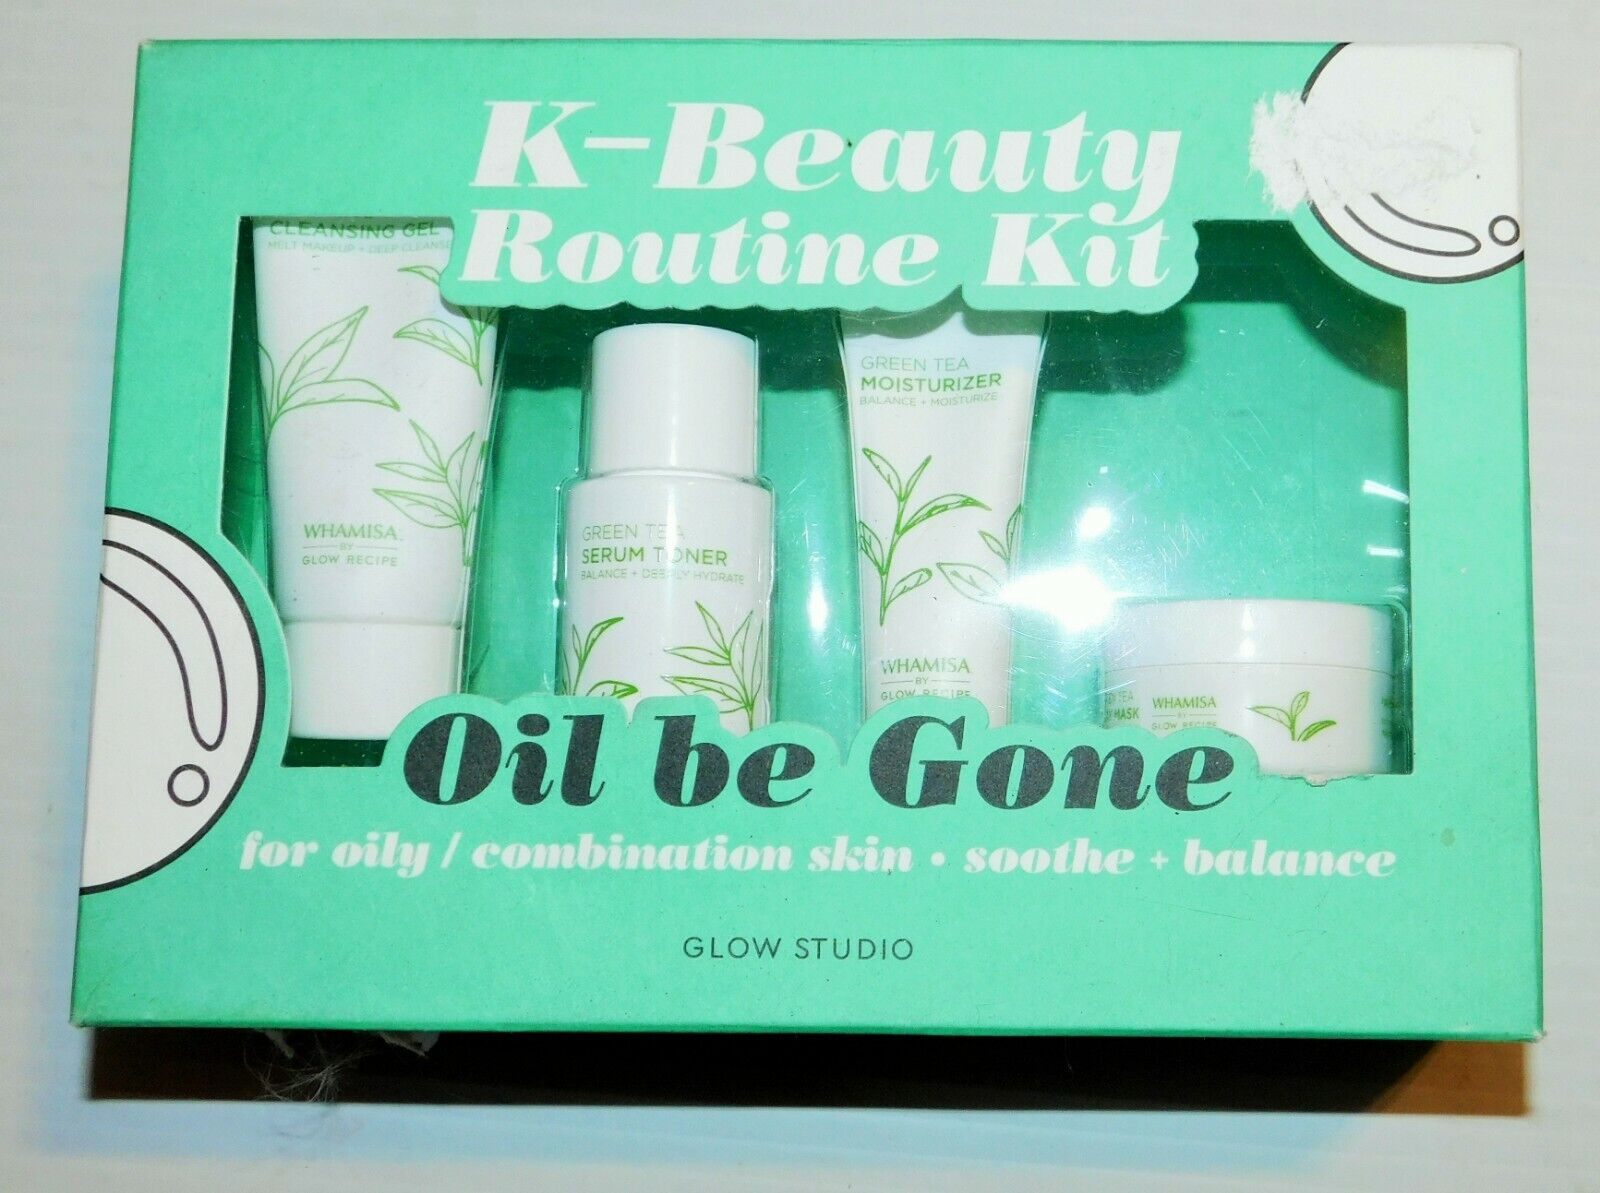 Glow Studio Oil Be Gone K-Beauty Routine Kit - 5.2oz 3